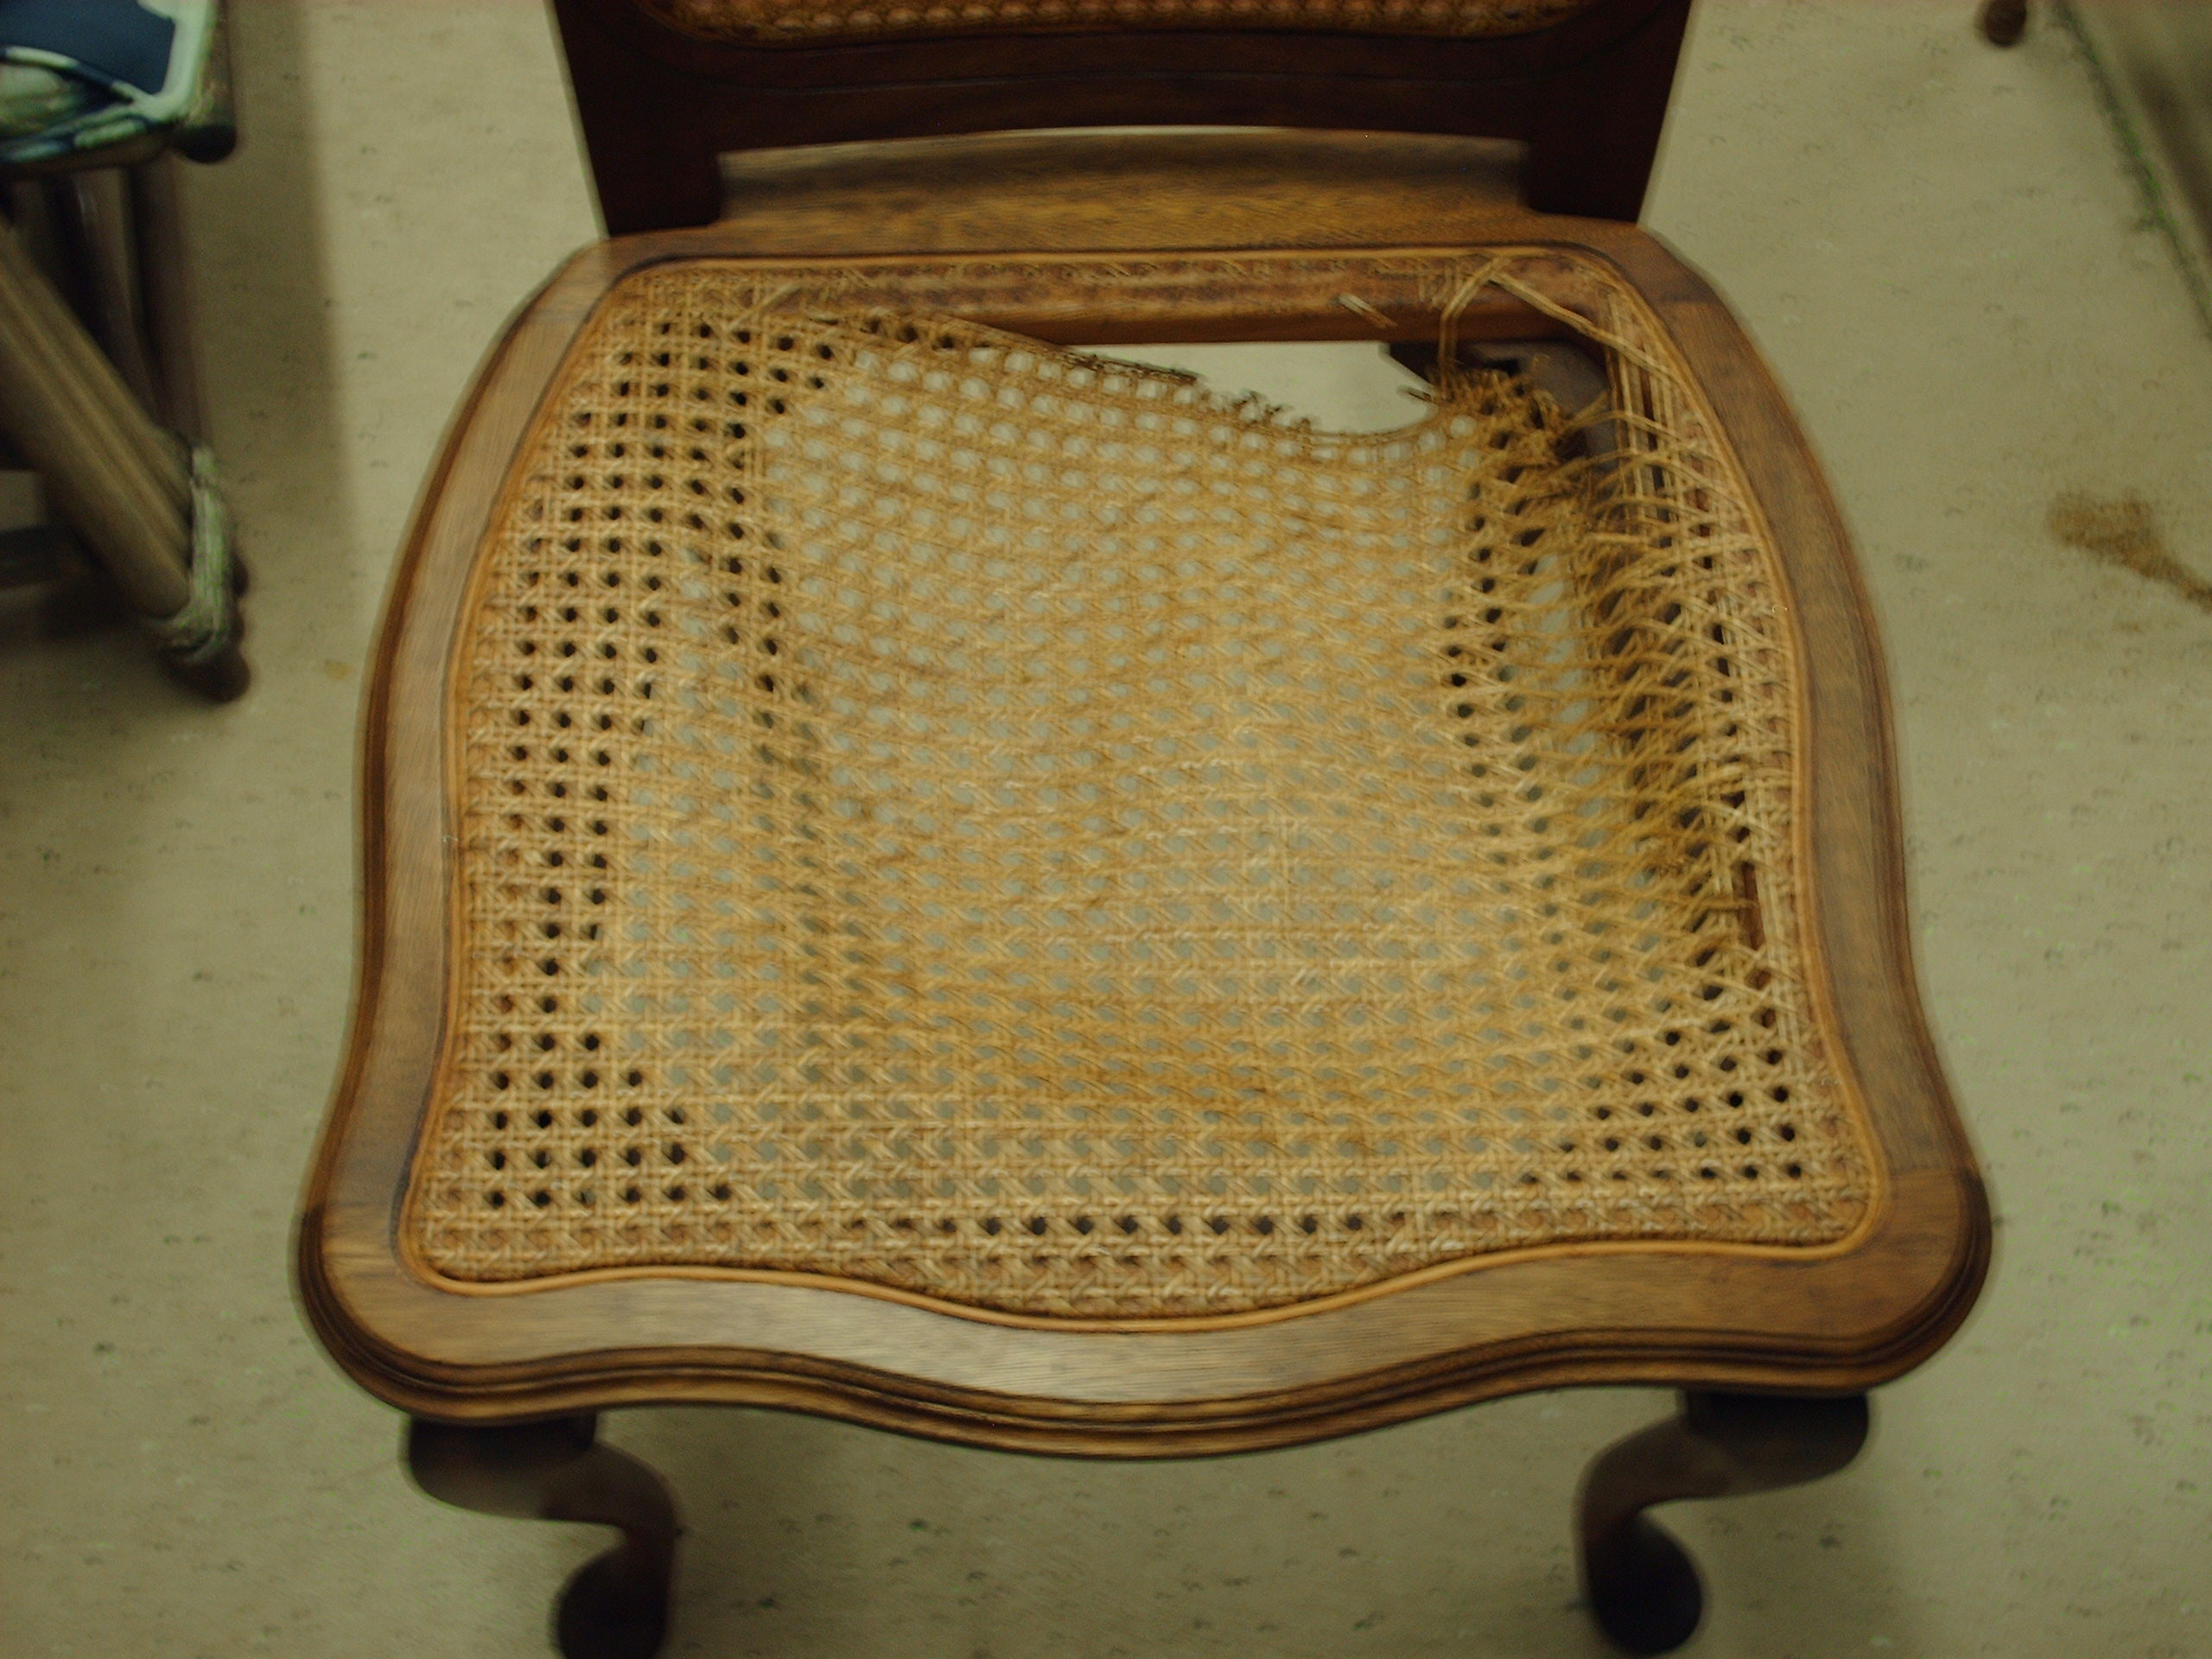 Seat Weaving Caning Heritage Basket Studio Amp Chair